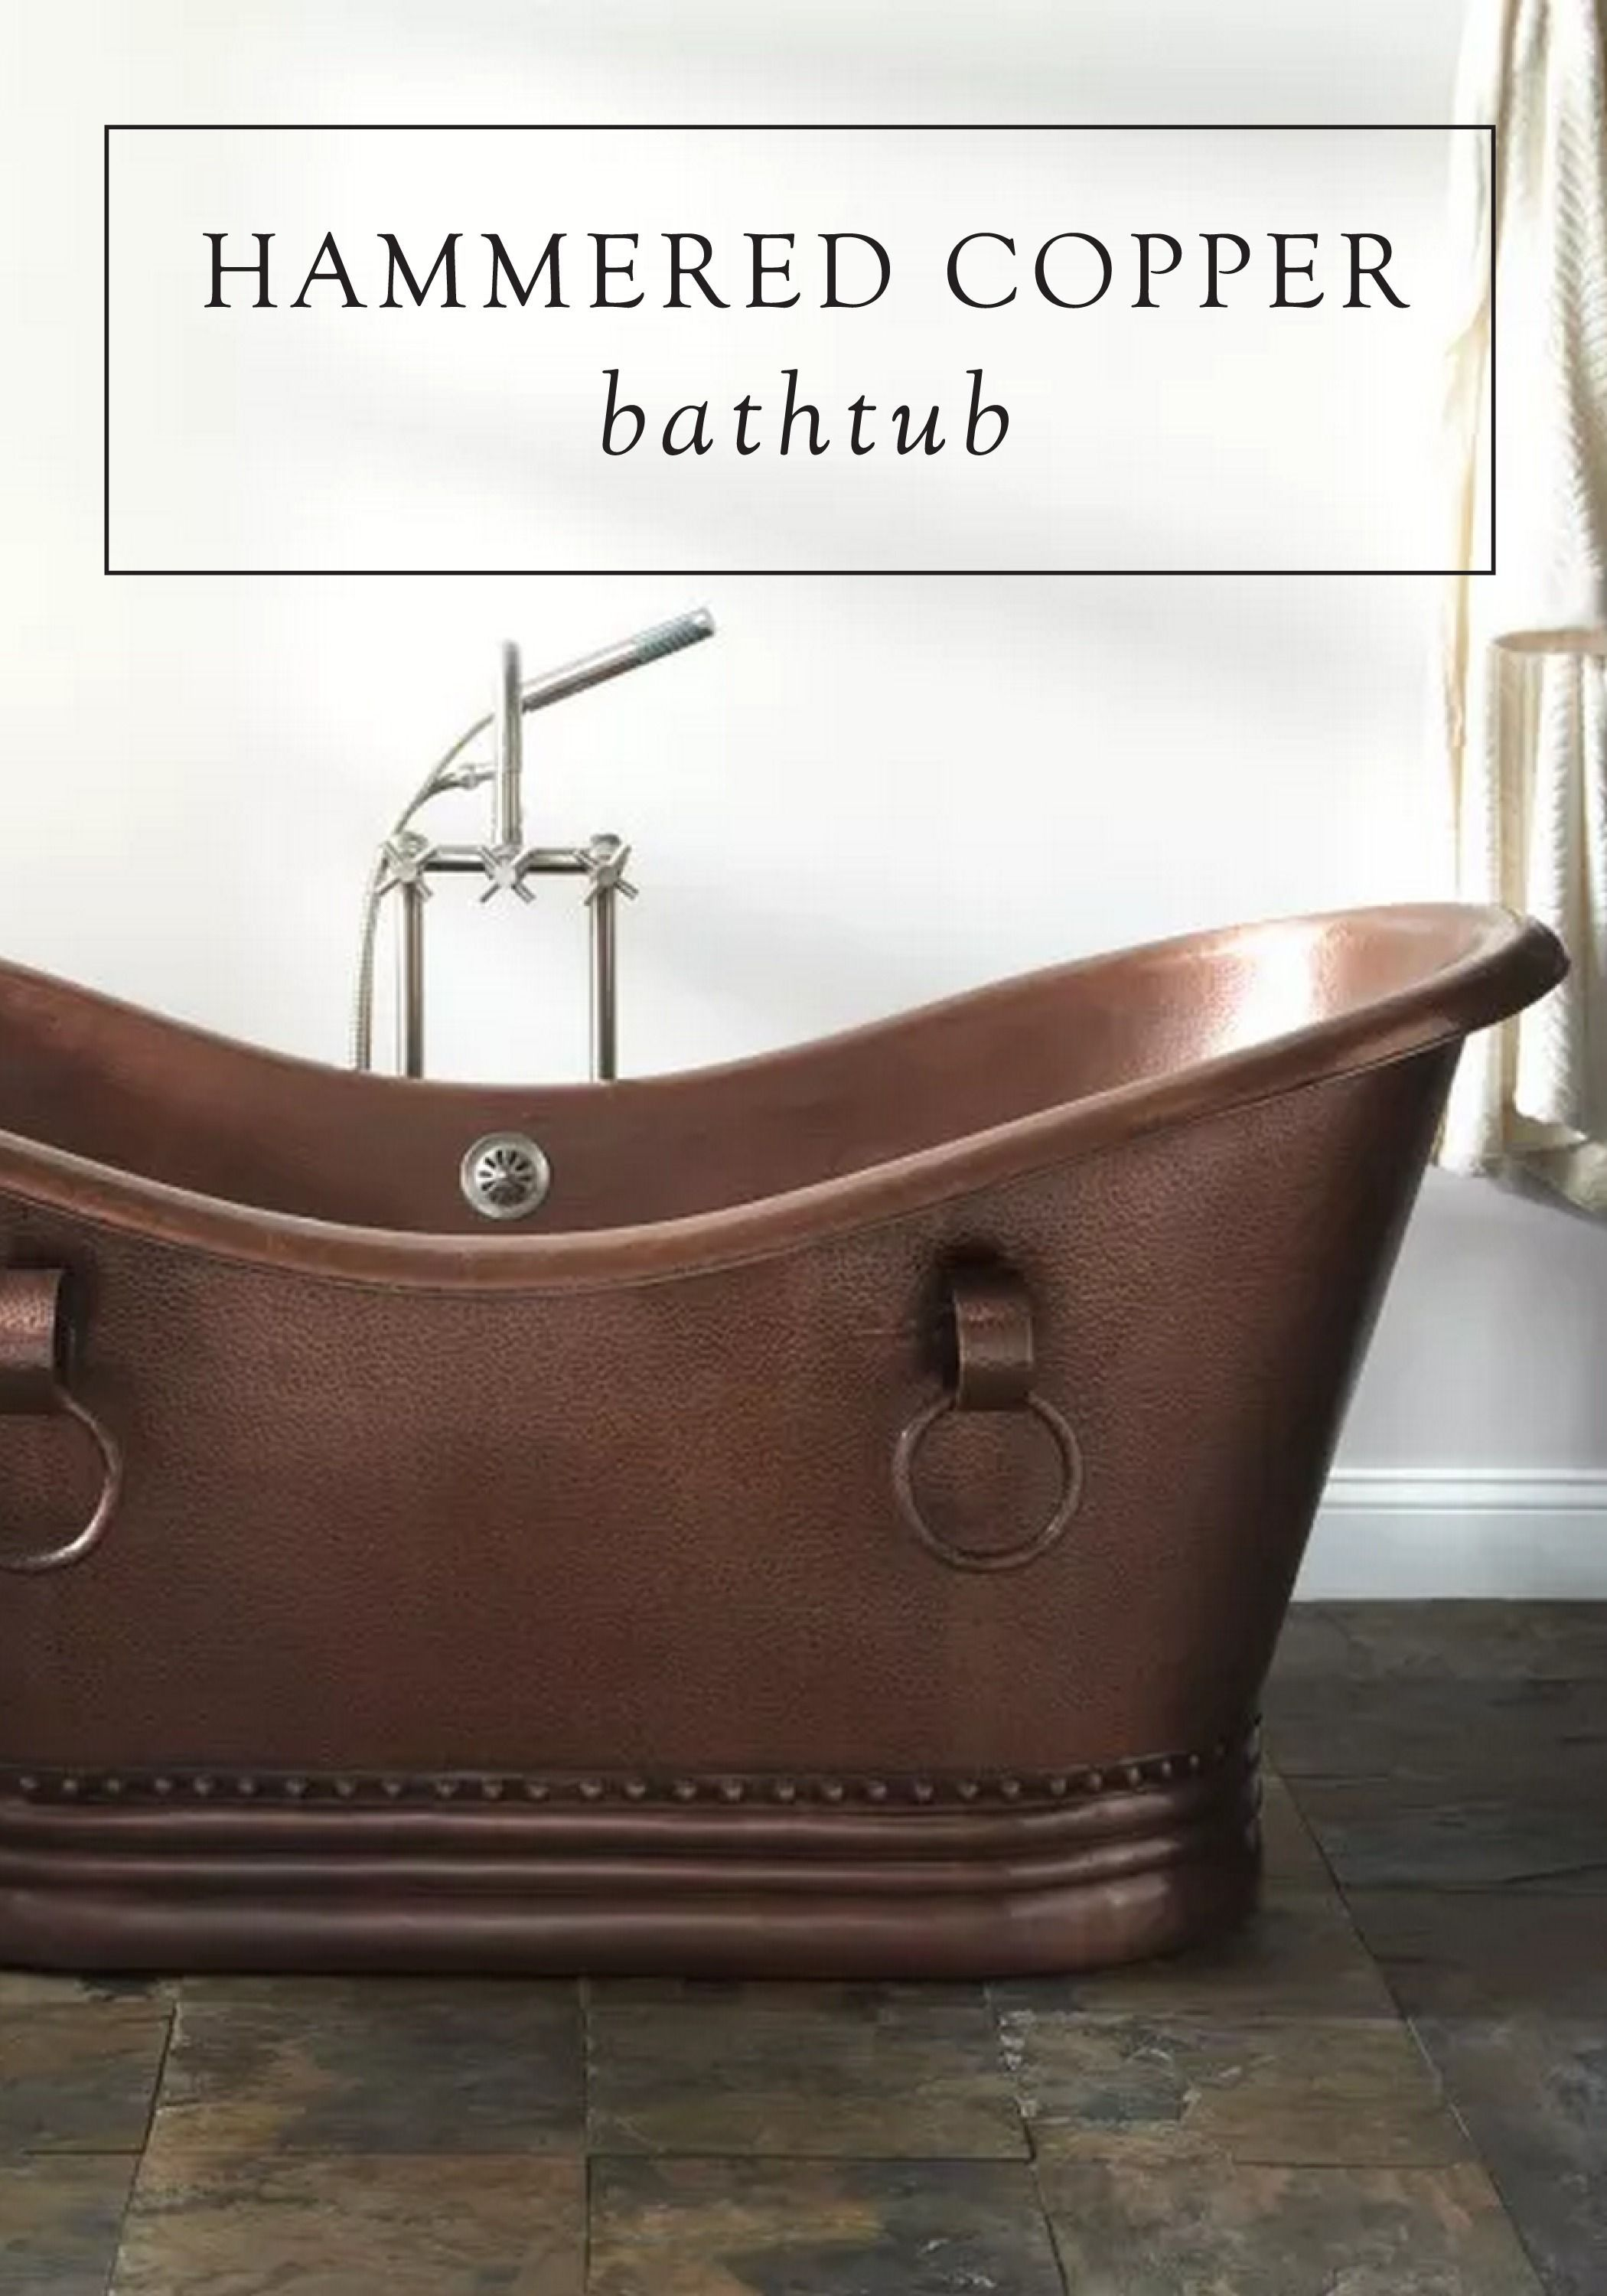 Inspiration for your bathroom remodel starts with this hammered copper bathtub as the perfect focal piece bathtubsunlimited